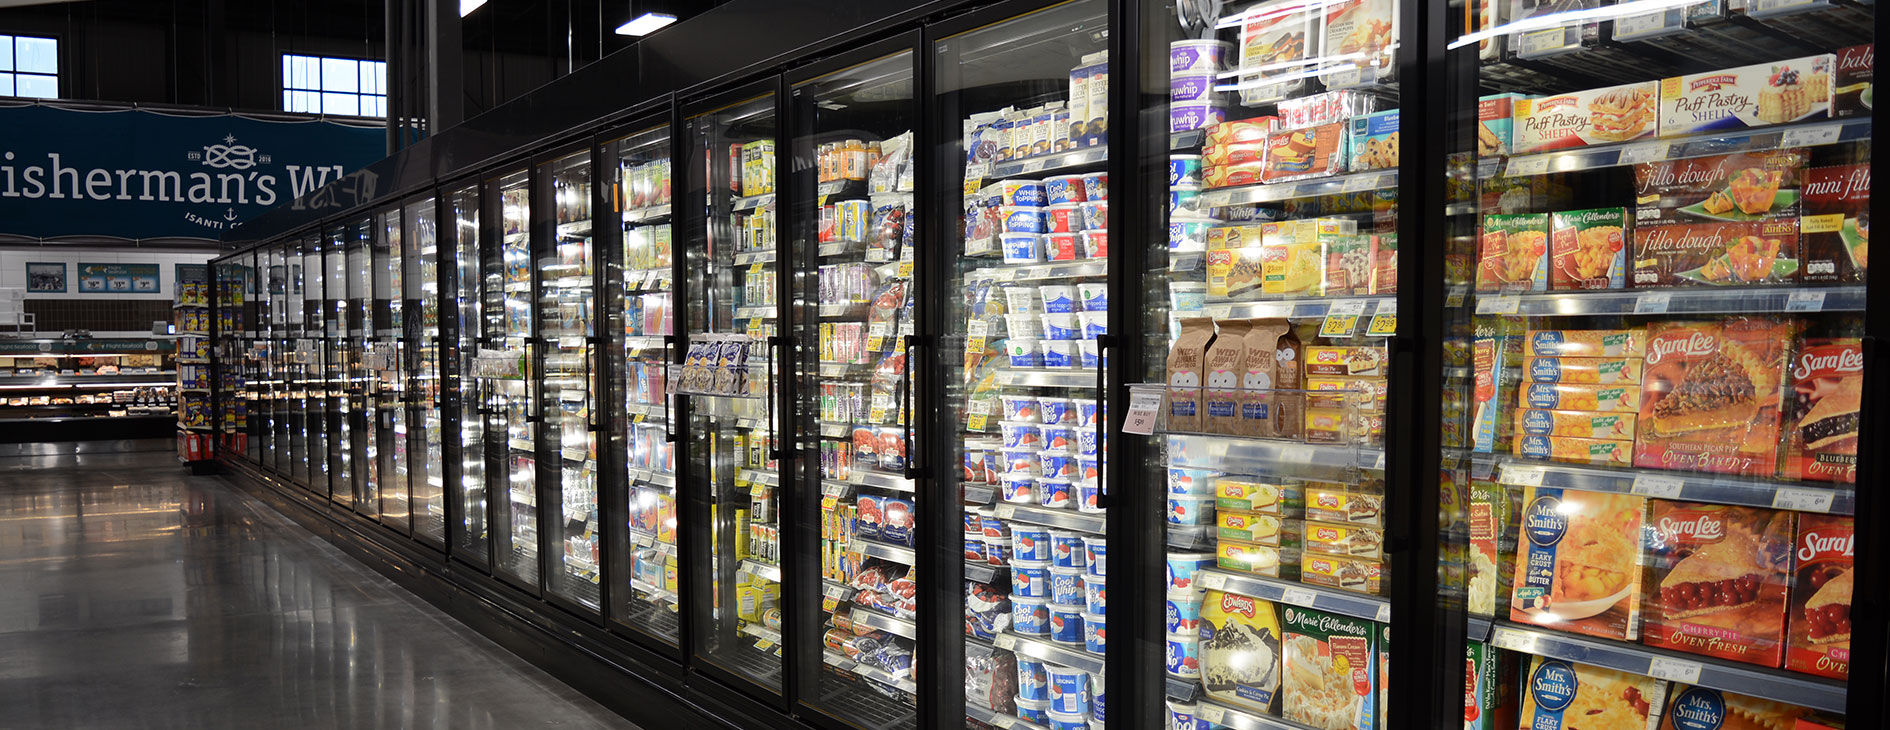 Refrigeration Specialties